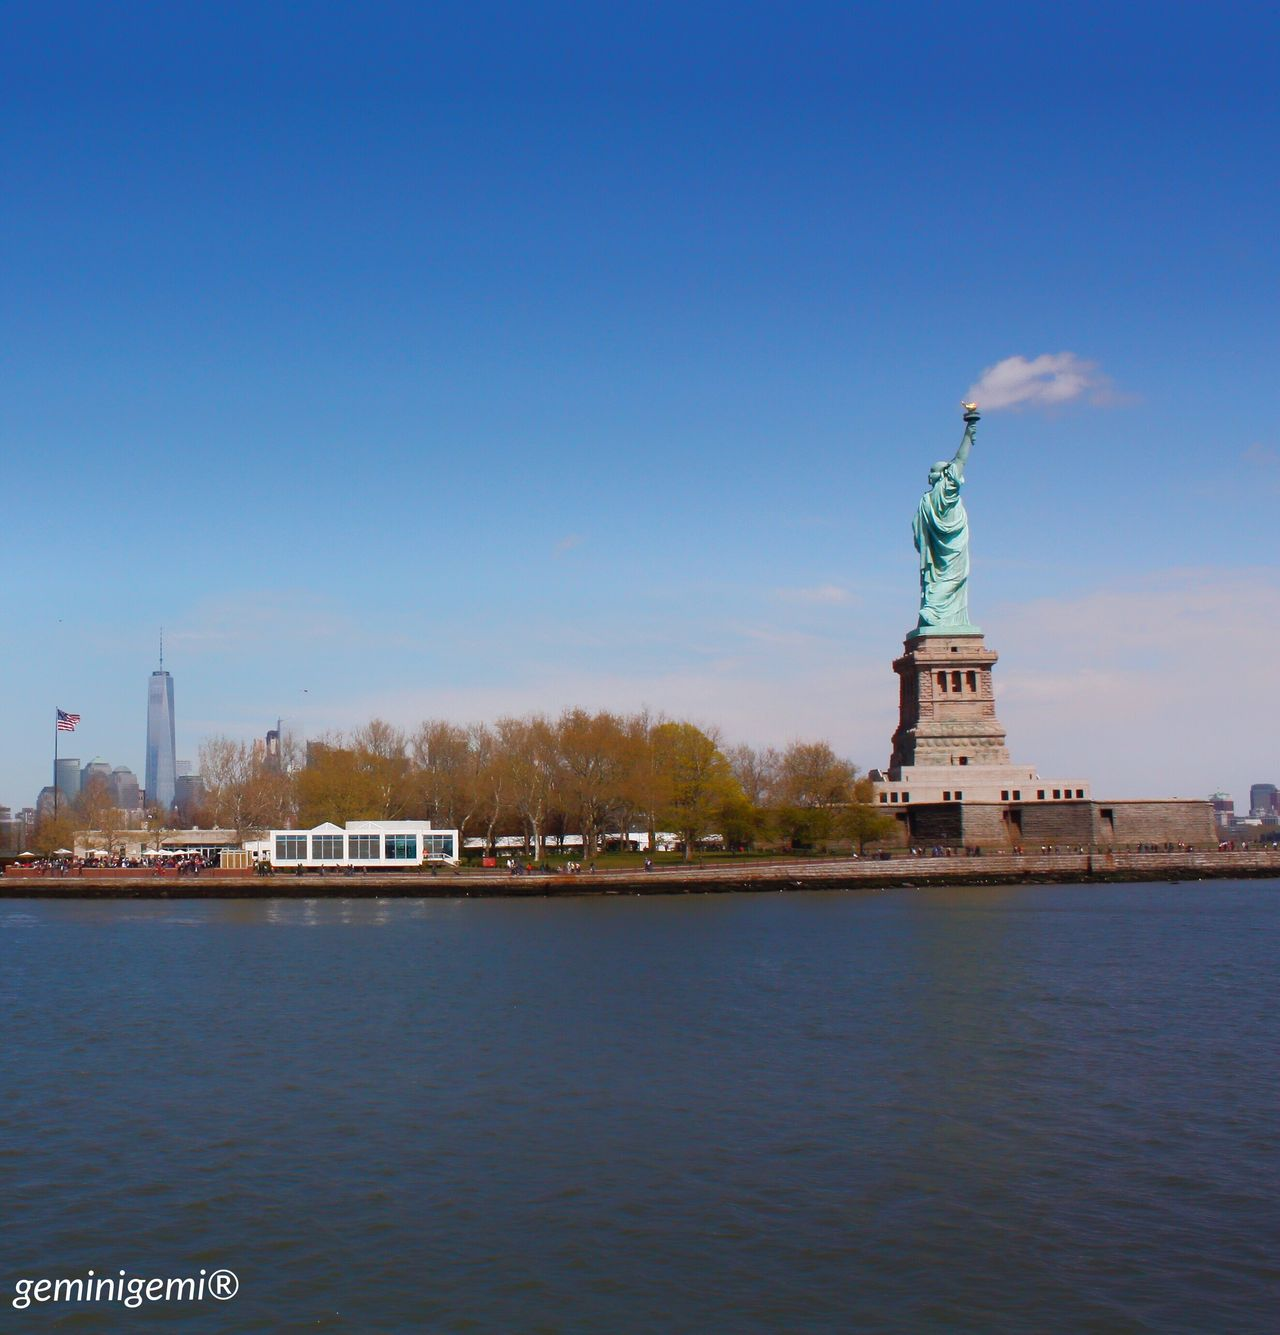 Newyork Newyorkcity America USA Hudsonriver Cruise Statueofliberty Smoke Cloud Favourite Picture Geminigemiphoto® Mydream Dreamcametrue April 2016 Trip Holiday Happyday Happy 🇺🇸🏙🗽